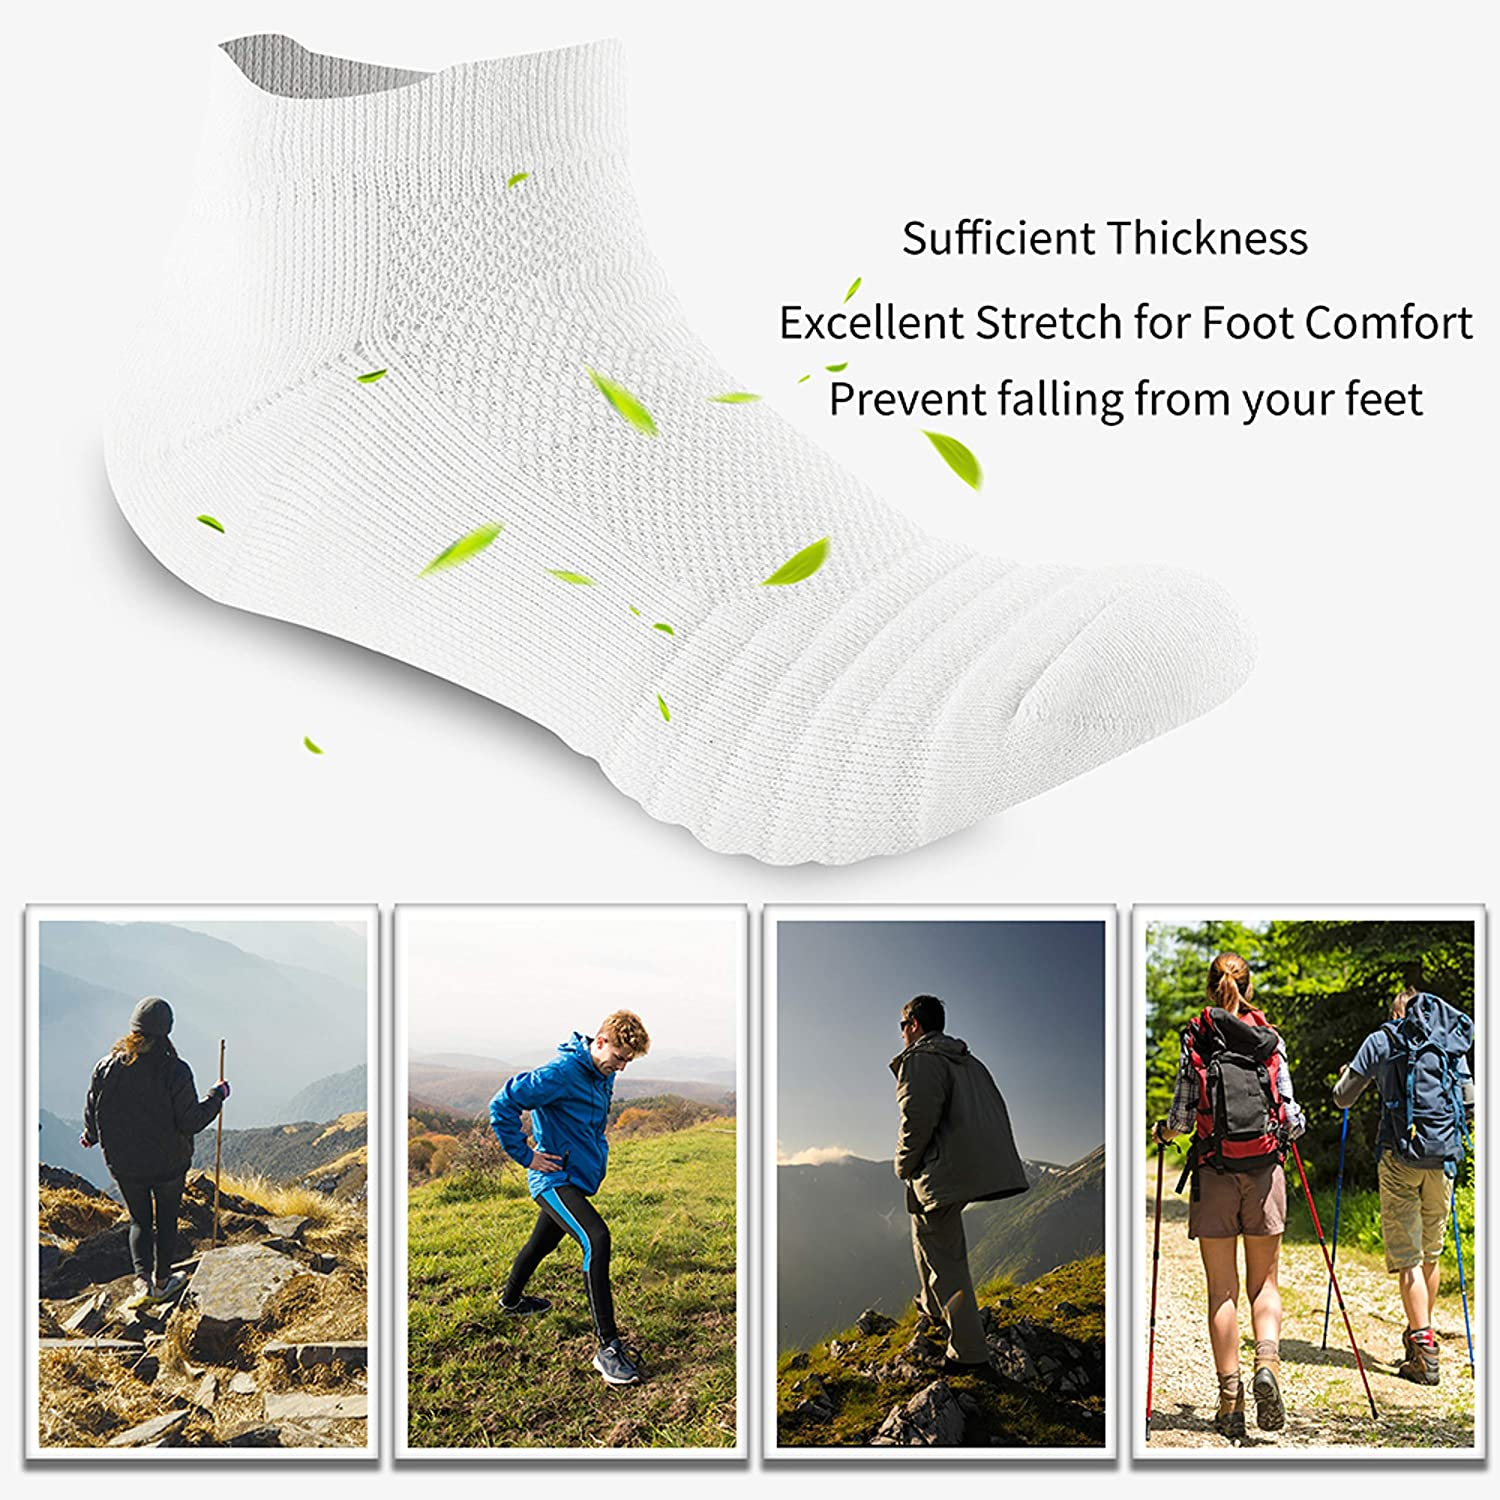 SUNWIND Sport Socks Unisex 6 Pairs Performance Running Low Cut Ankle Athletic Trainer Breathable Cotton Socks for Man /& Women